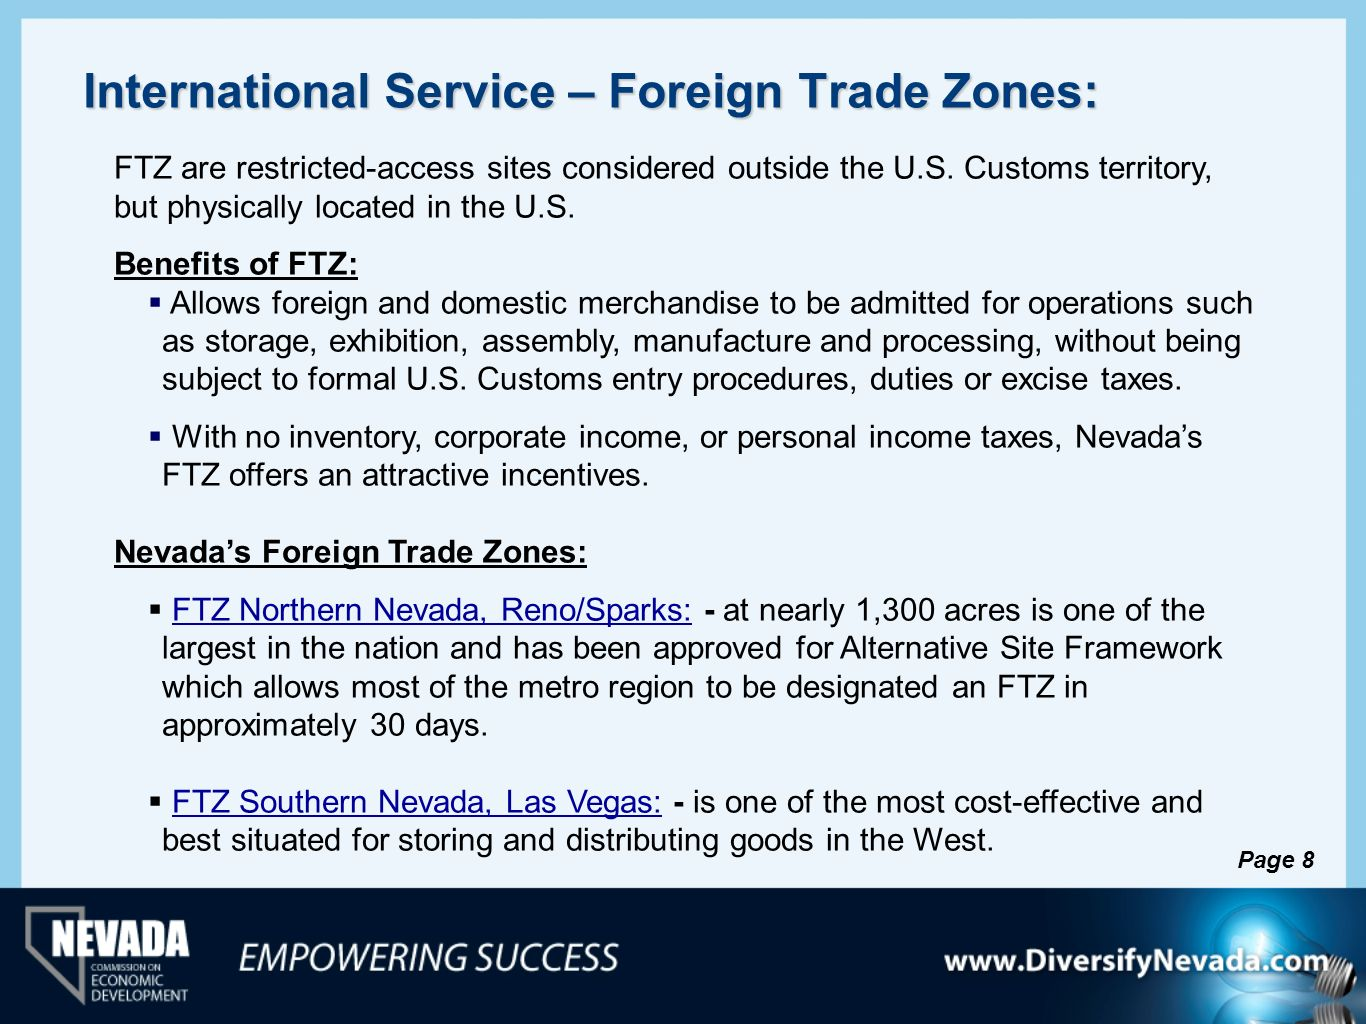 International Service – Foreign Trade Zones: FTZ are restricted-access sites considered outside the U.S. Customs territory, but physically located in